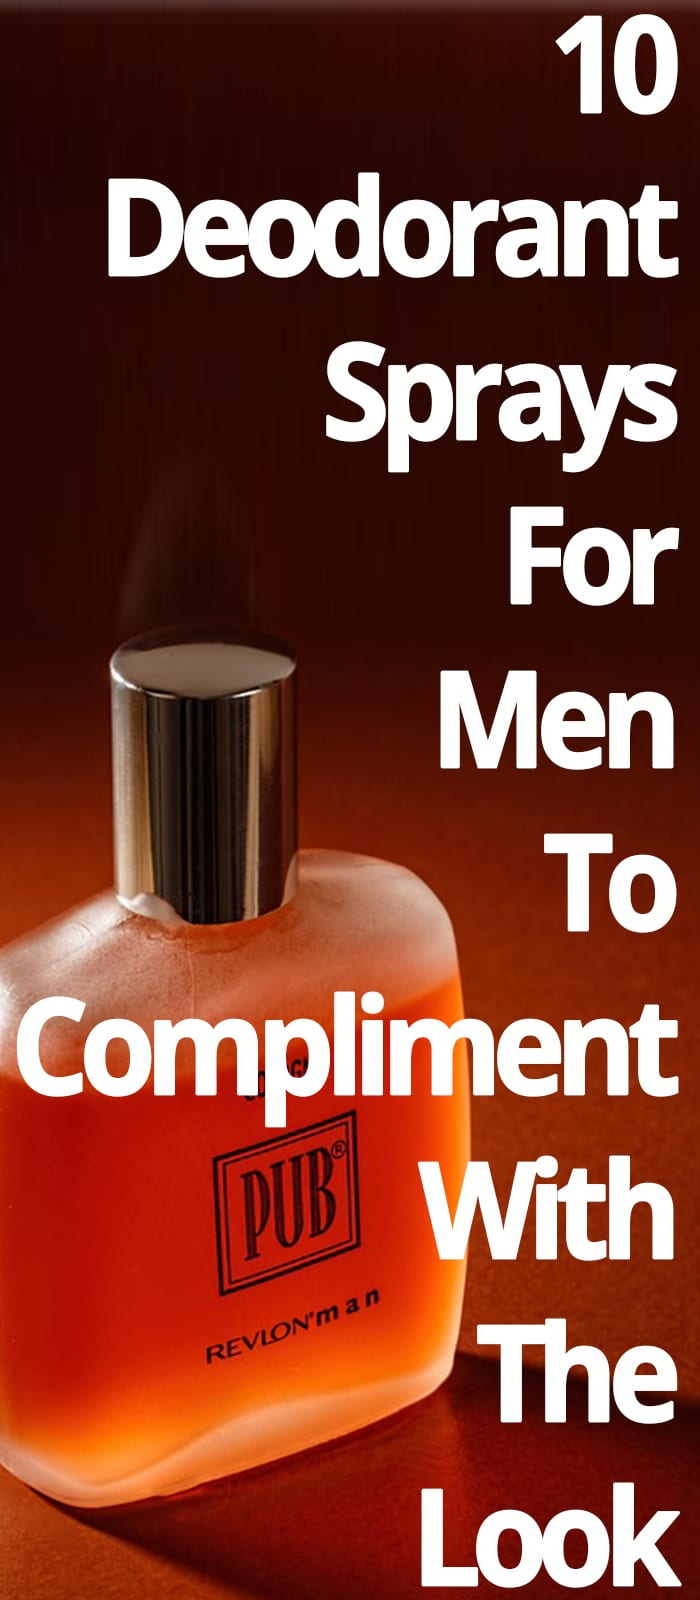 DEODORANT SPRAYS FOR MEN TO COMPLIMENT WITH THE LOOK